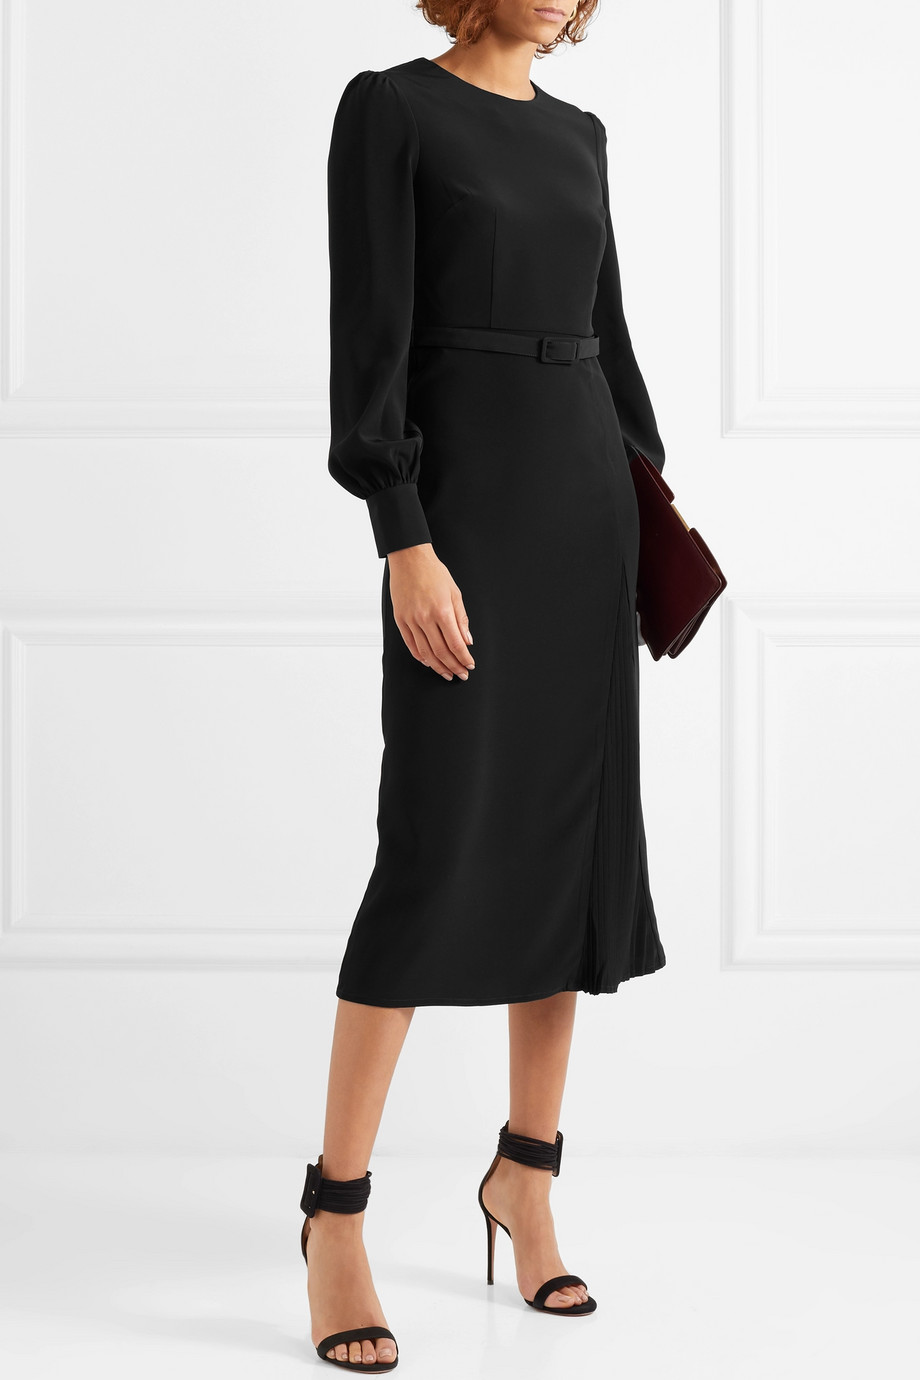 Co Belted crepe midi dress